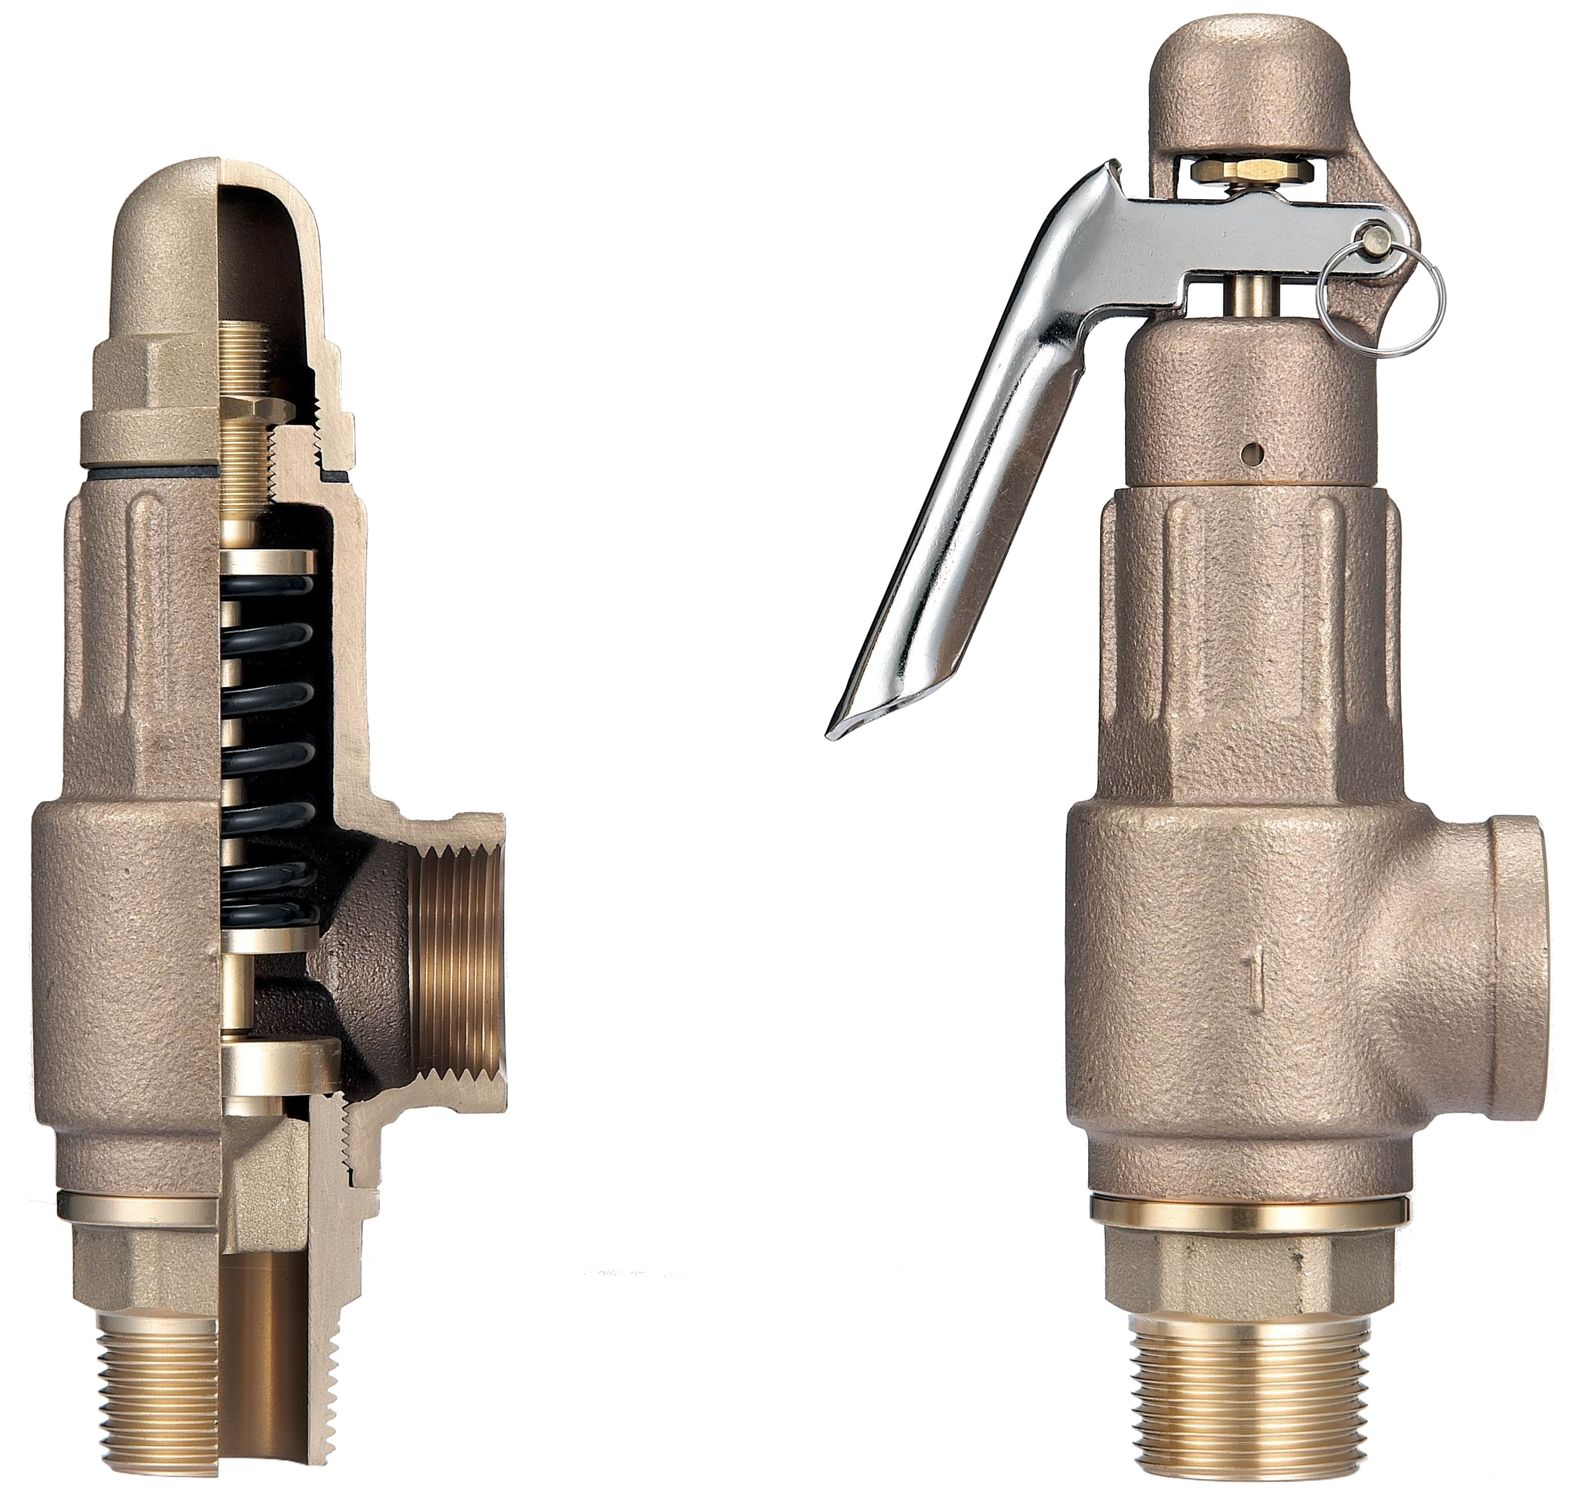 Pressure Security Valve Technical Valve Progetto Ltd